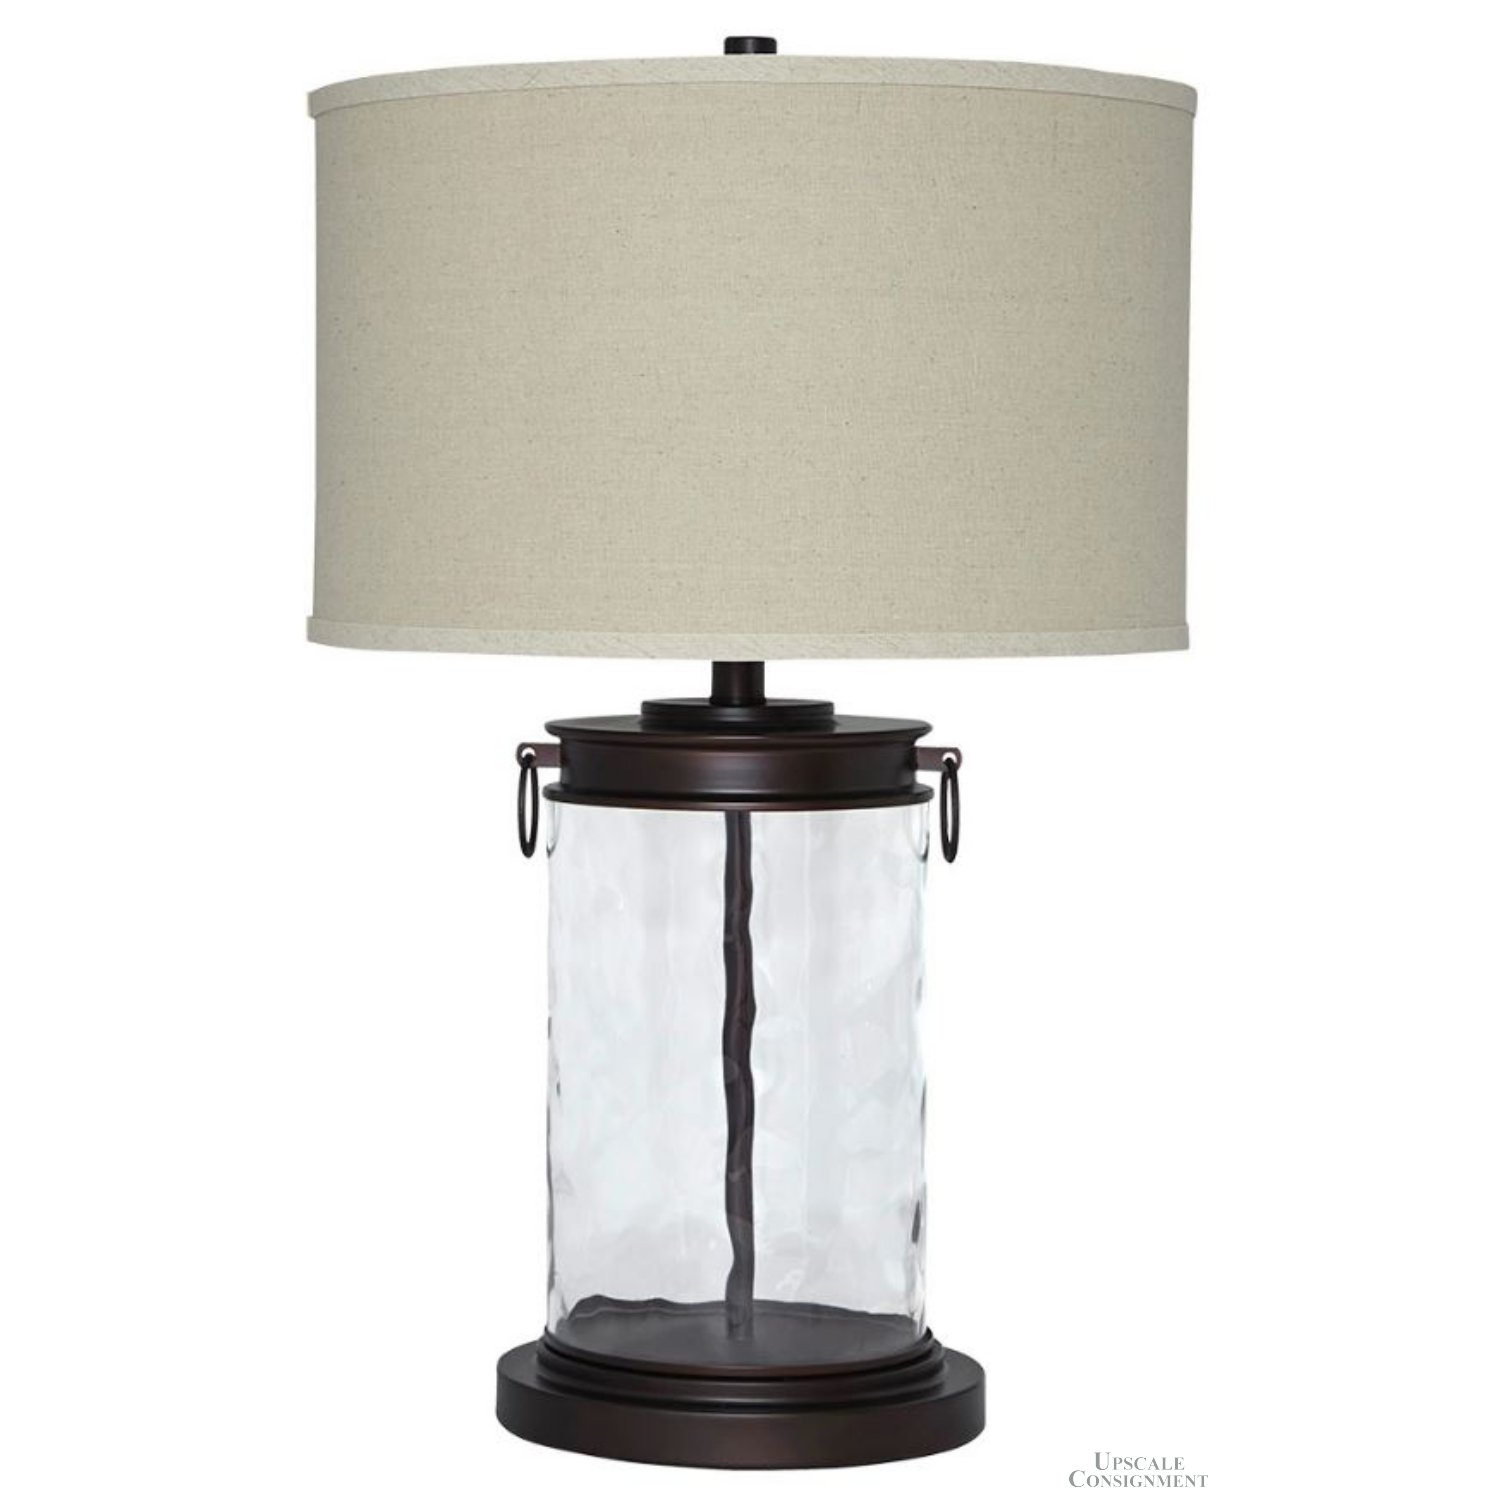 Clear-Wave-Glass-Table-Lamp_88348A.jpg